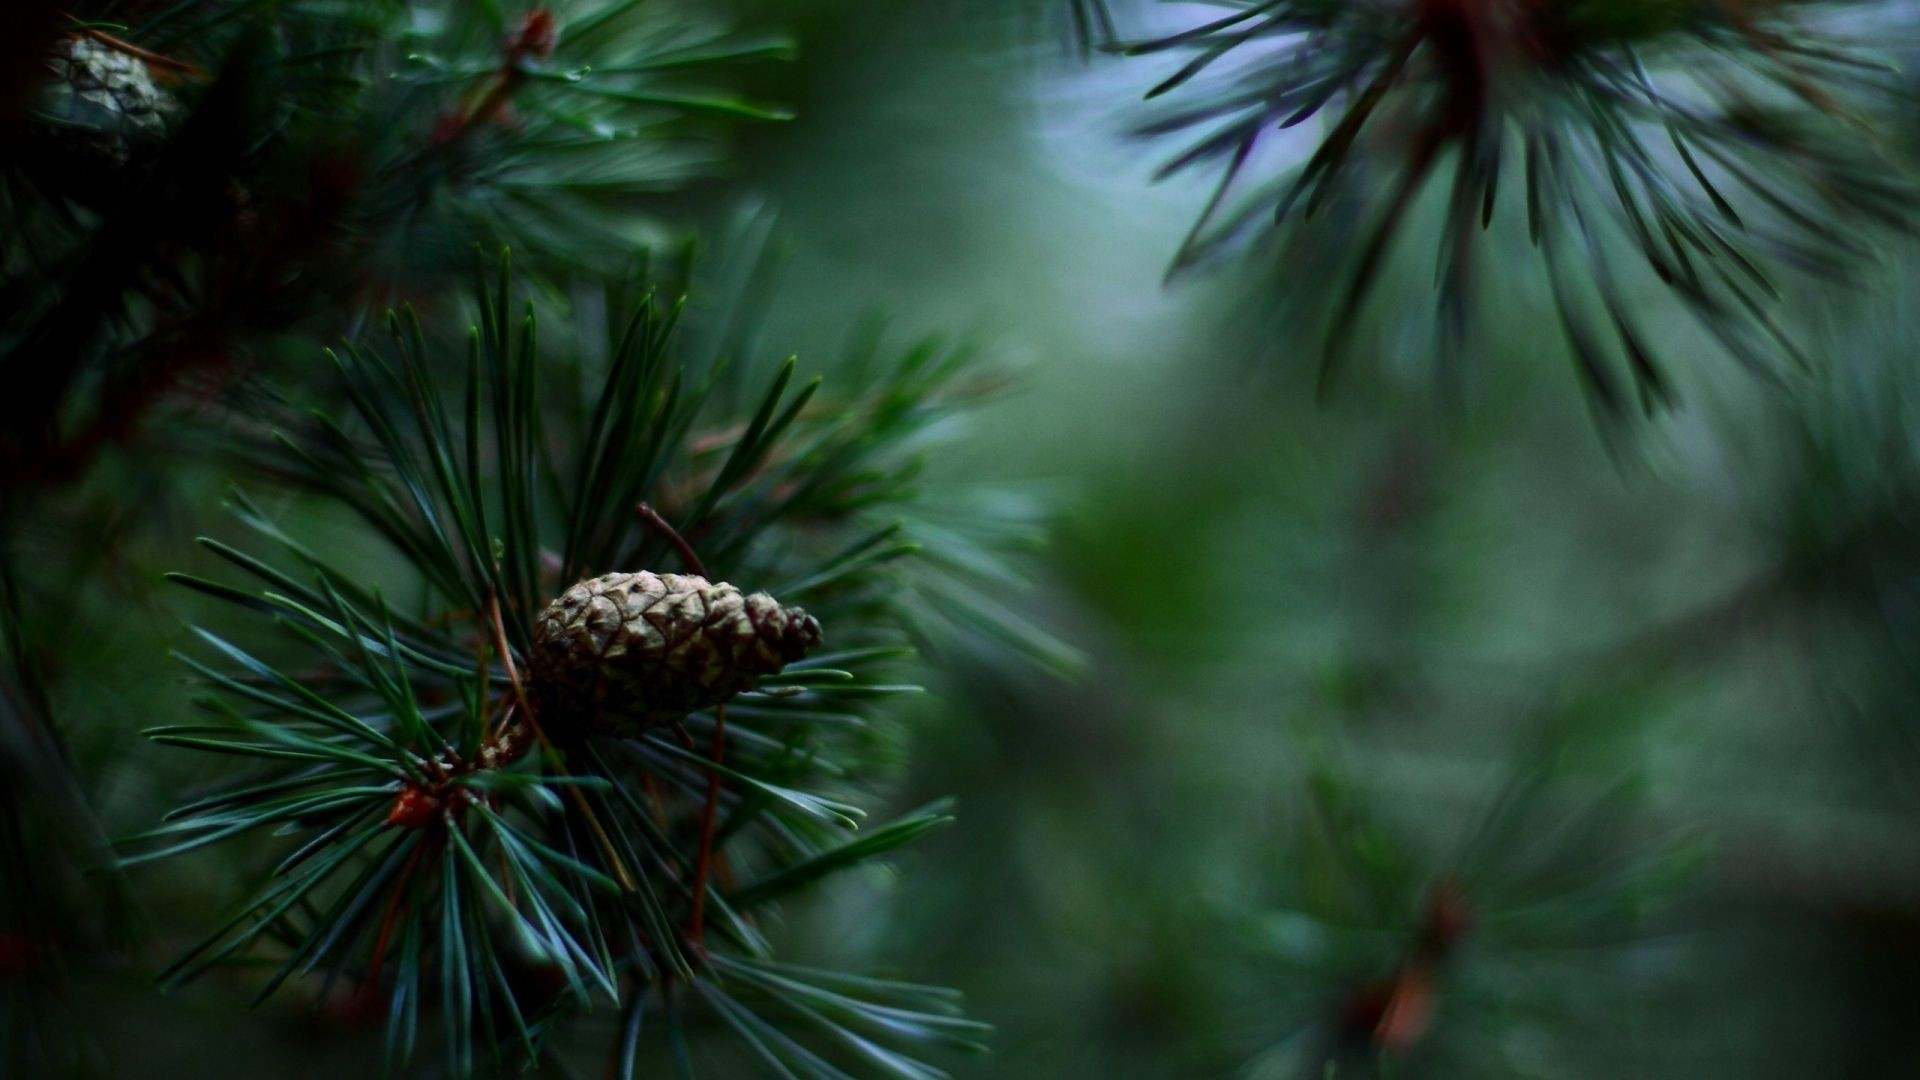 Pine Tree Download Wallpaper